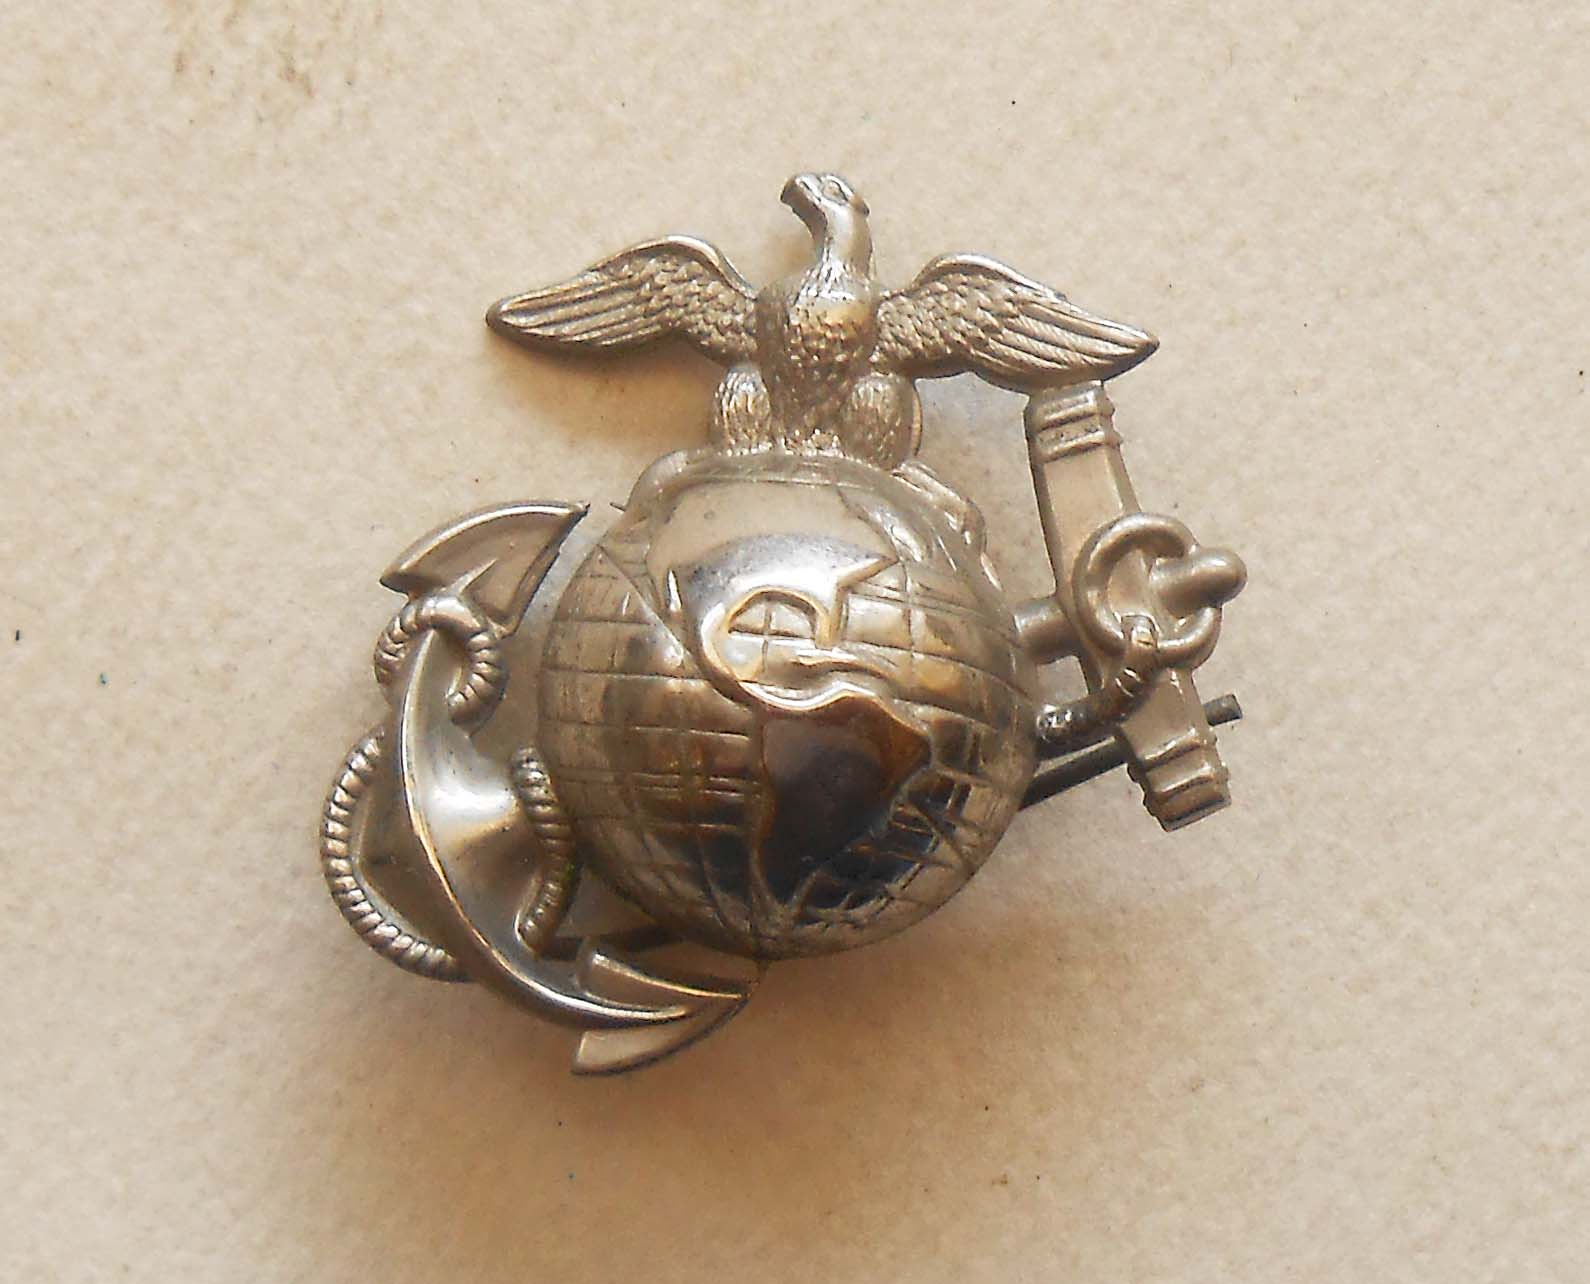 Marine corps insignia and memorabilia beautiful details on the obverse the eagles eye is especially fine the reverse shows both pins from local estate here in san diego 12500 sold aloadofball Choice Image